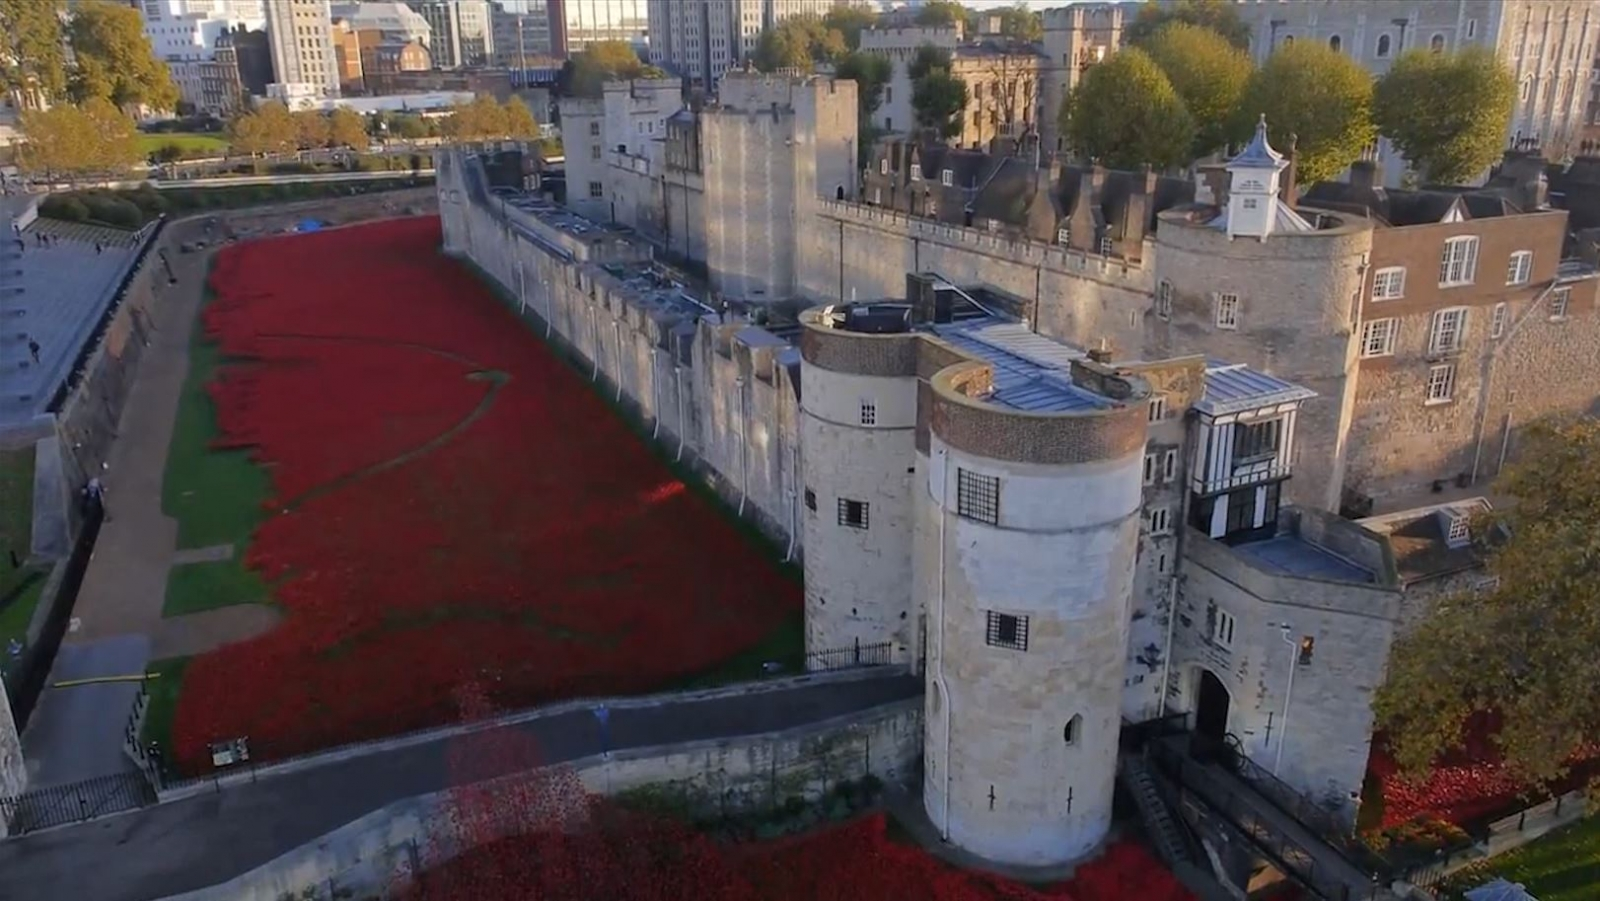 Tower of London Poppies Seen From Above in Drone Video